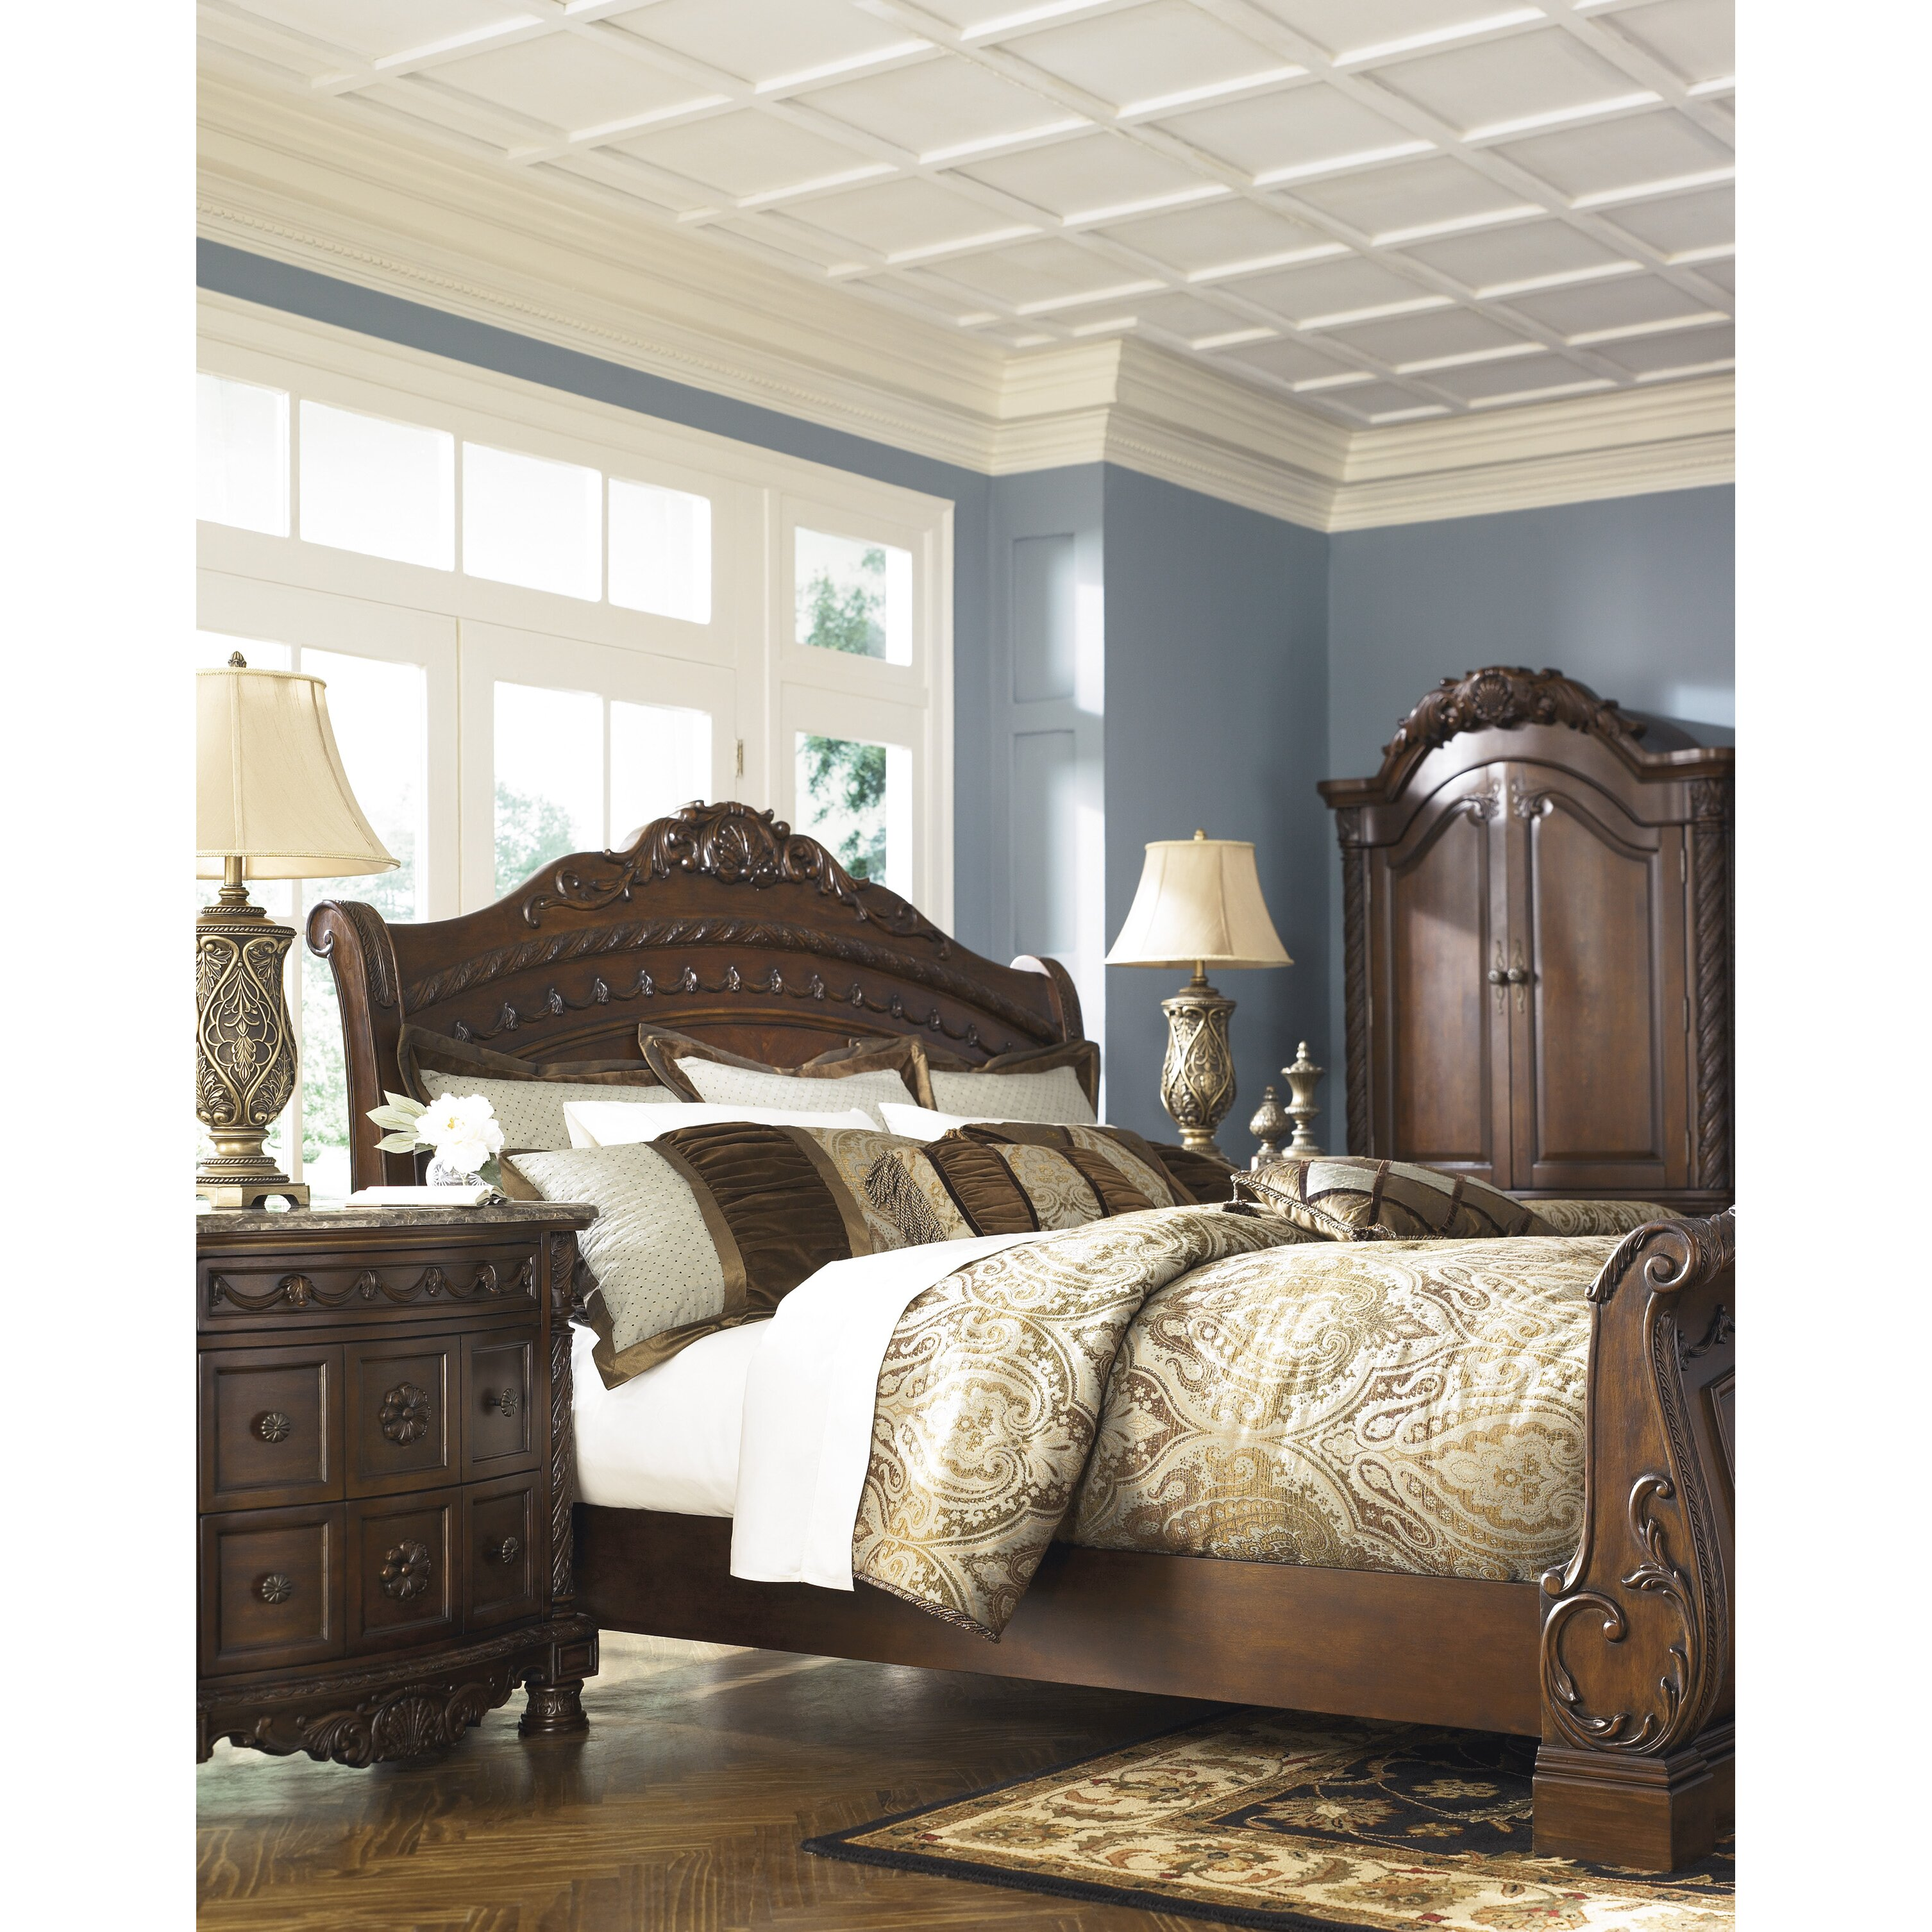 Signature design by ashley north shore sleigh bed - Ashley bedroom furniture reviews ...